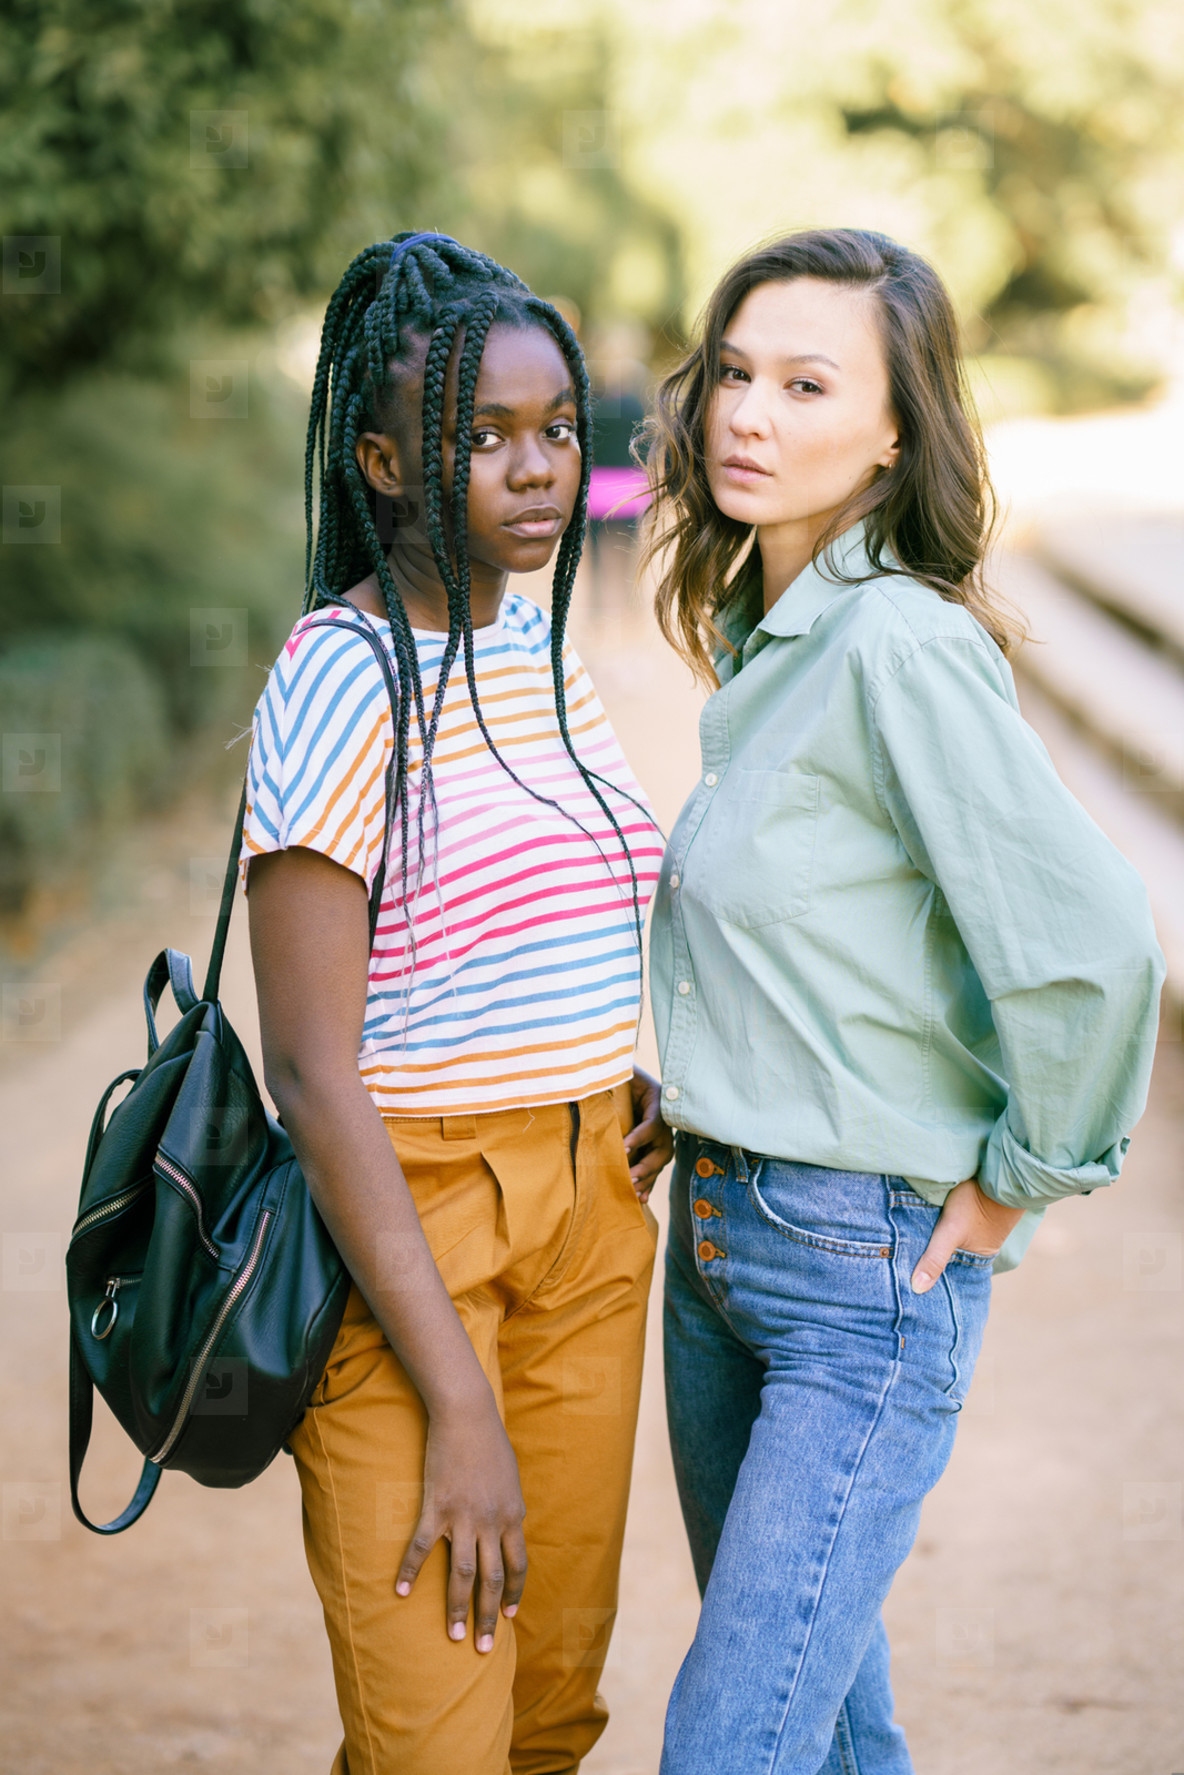 Two Multiethnic women looking at camera together on the street